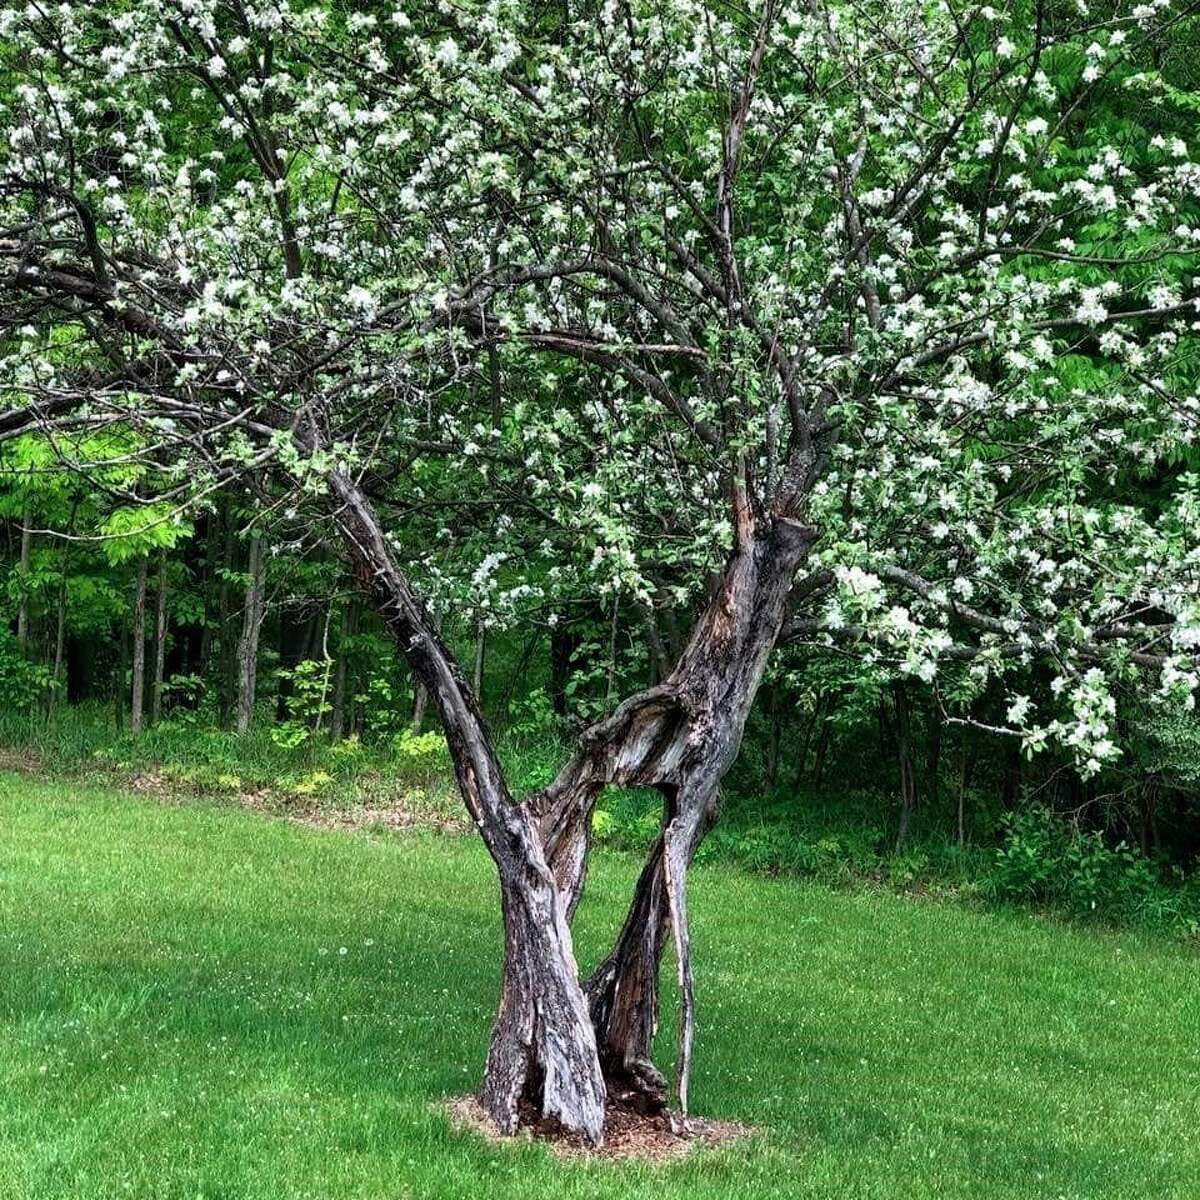 Featured is the Faith Tree. According to event organizer Julie Cole, the Faith Treeis a 140-year old tree that teaches residents about never giving up, weathering storms, having faith and believing in miracles.(Courtesy photo)